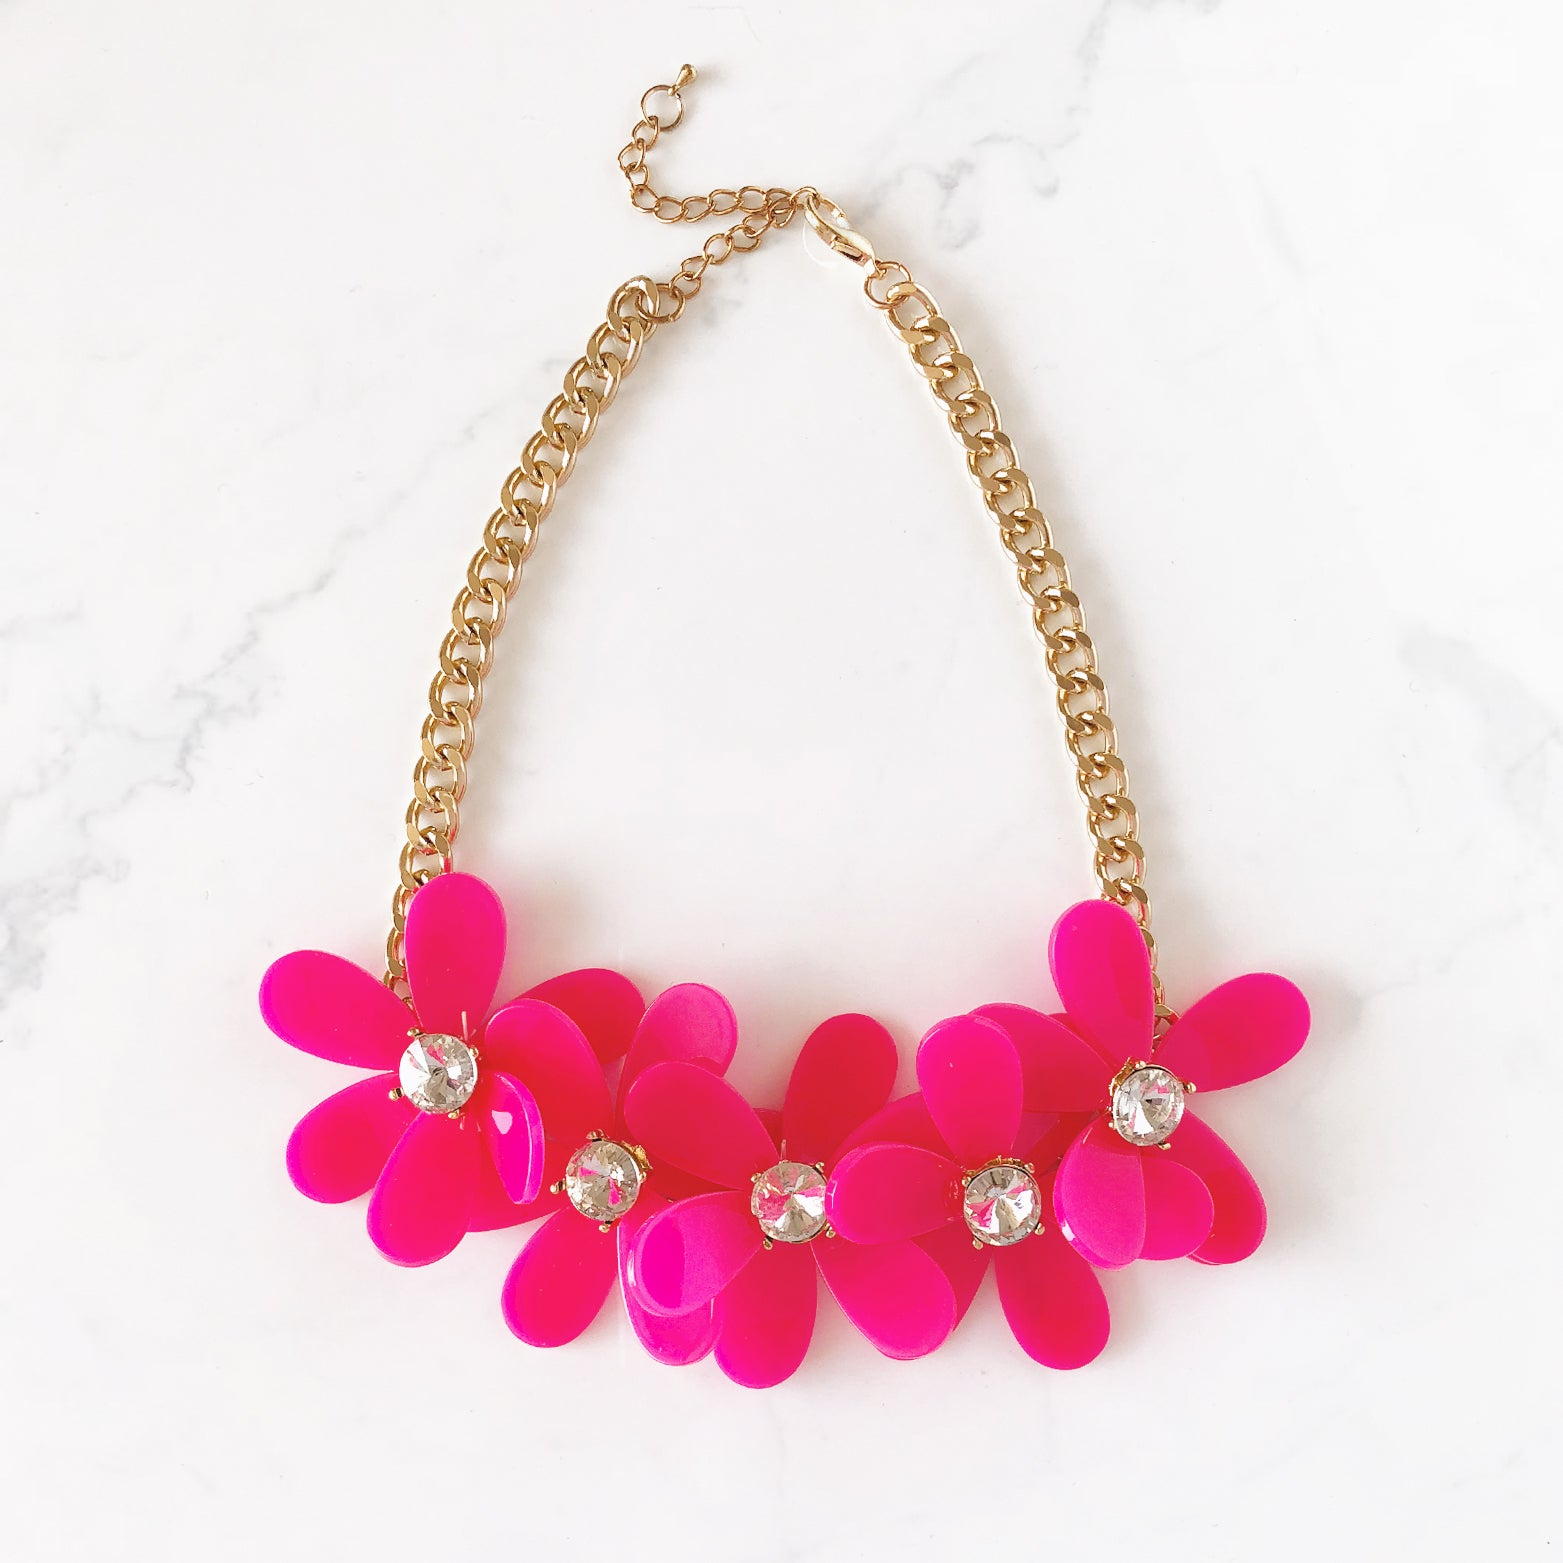 Floral Link Statement Necklace - Love, Kuza